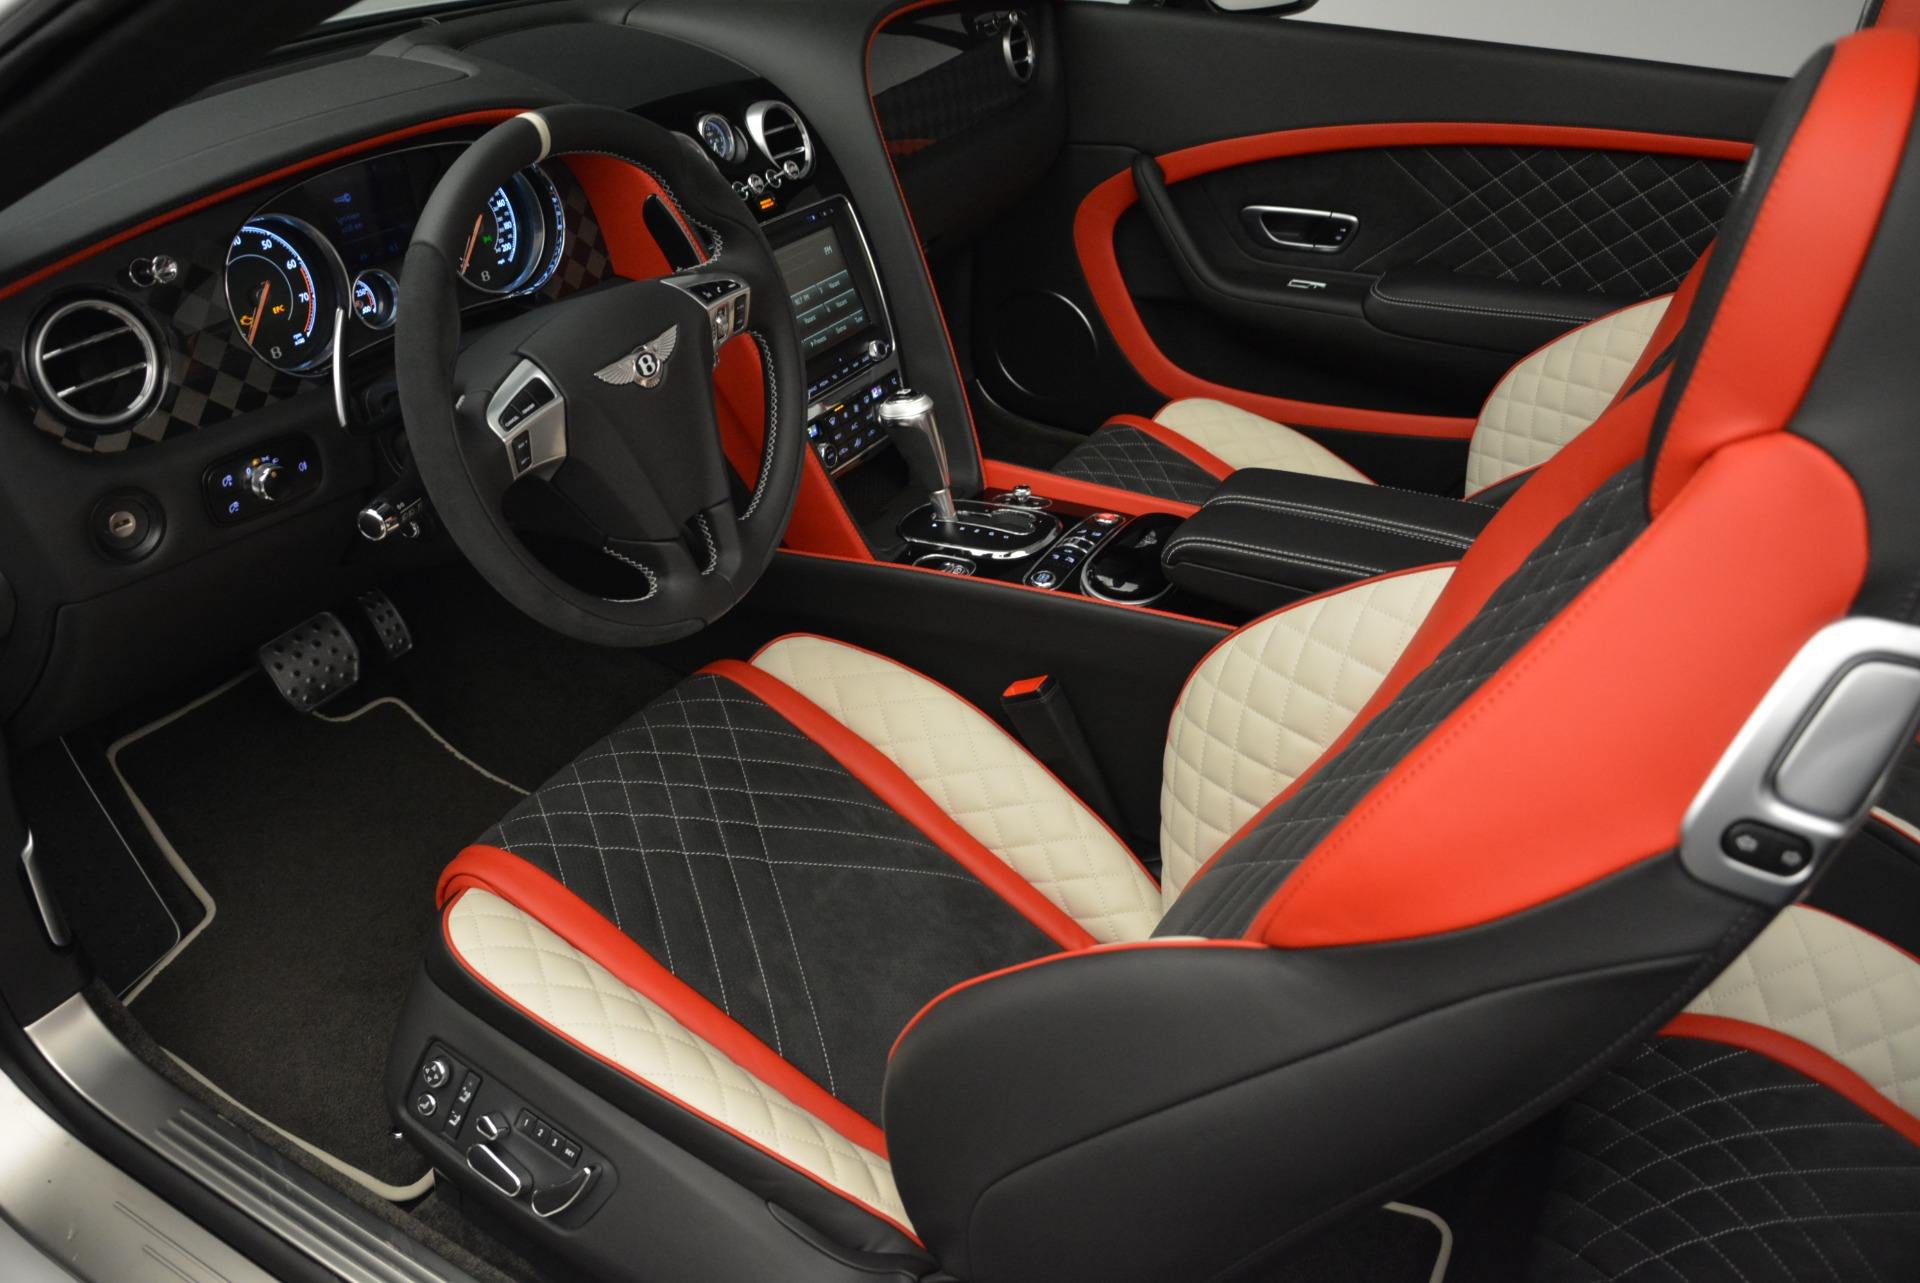 Used 2018 Bentley Continental GT Supersports Convertible For Sale In Westport, CT 1875_p26